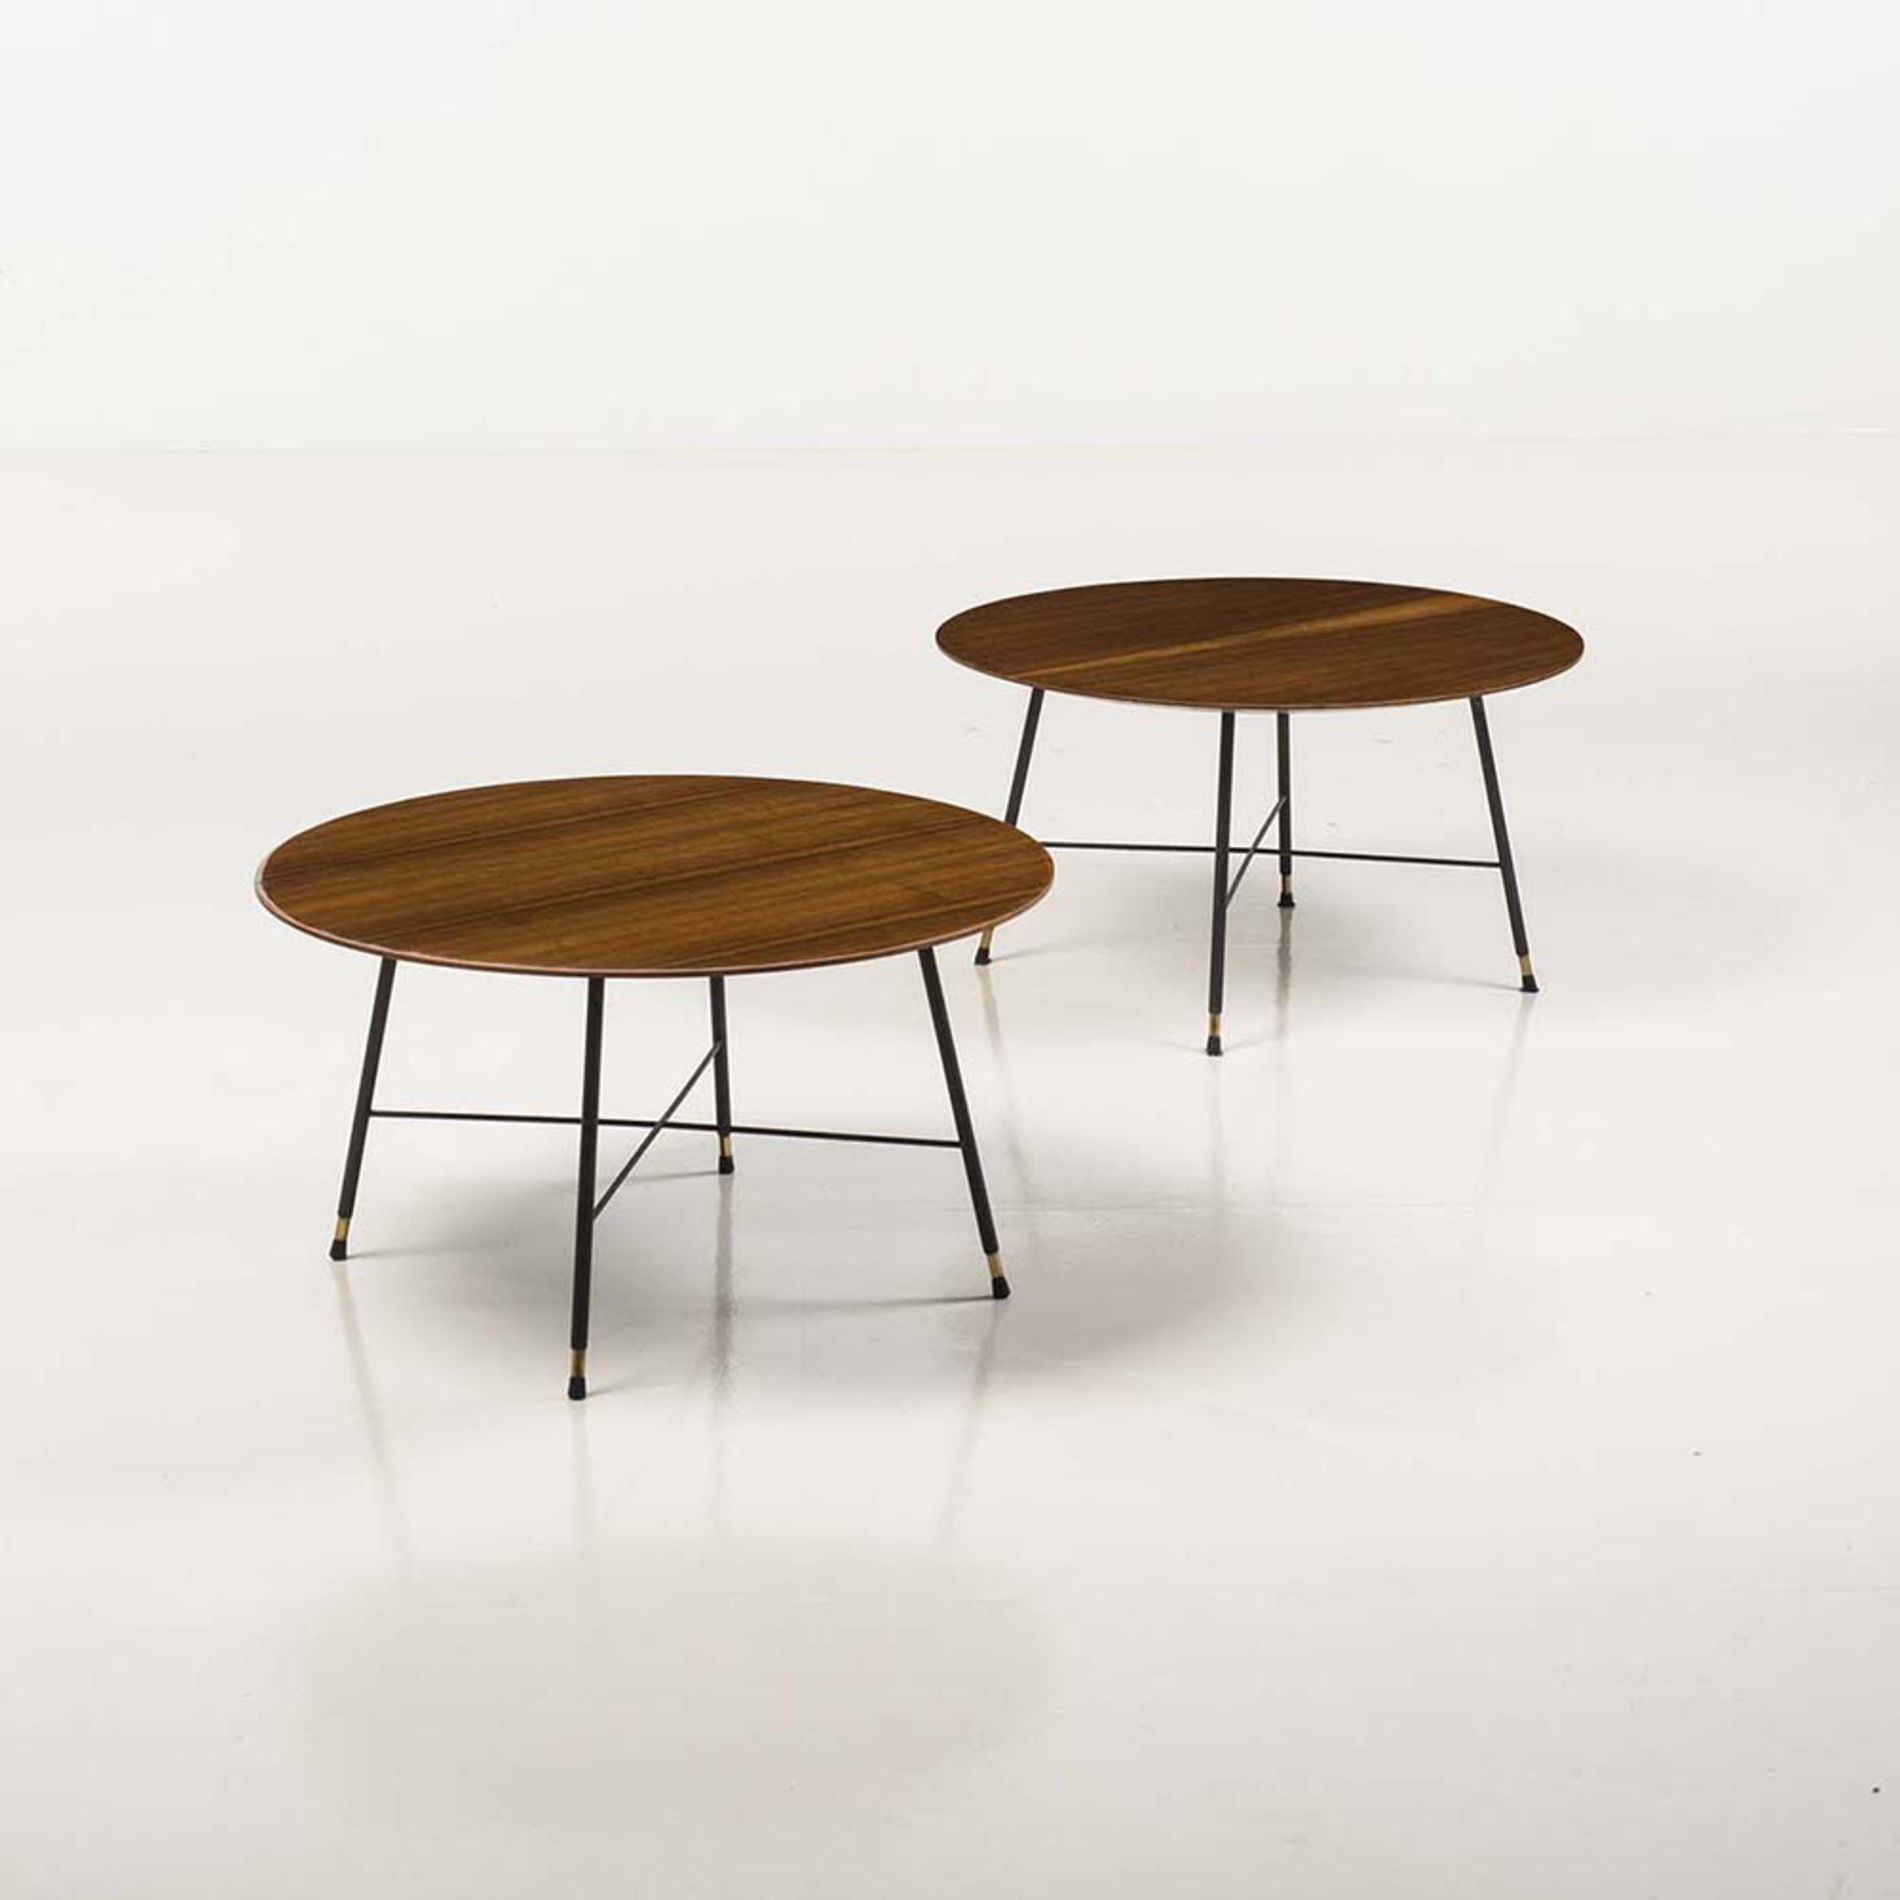 Ico Parisi Enameled Metal Brass and Wood Coffee Tables 1950s